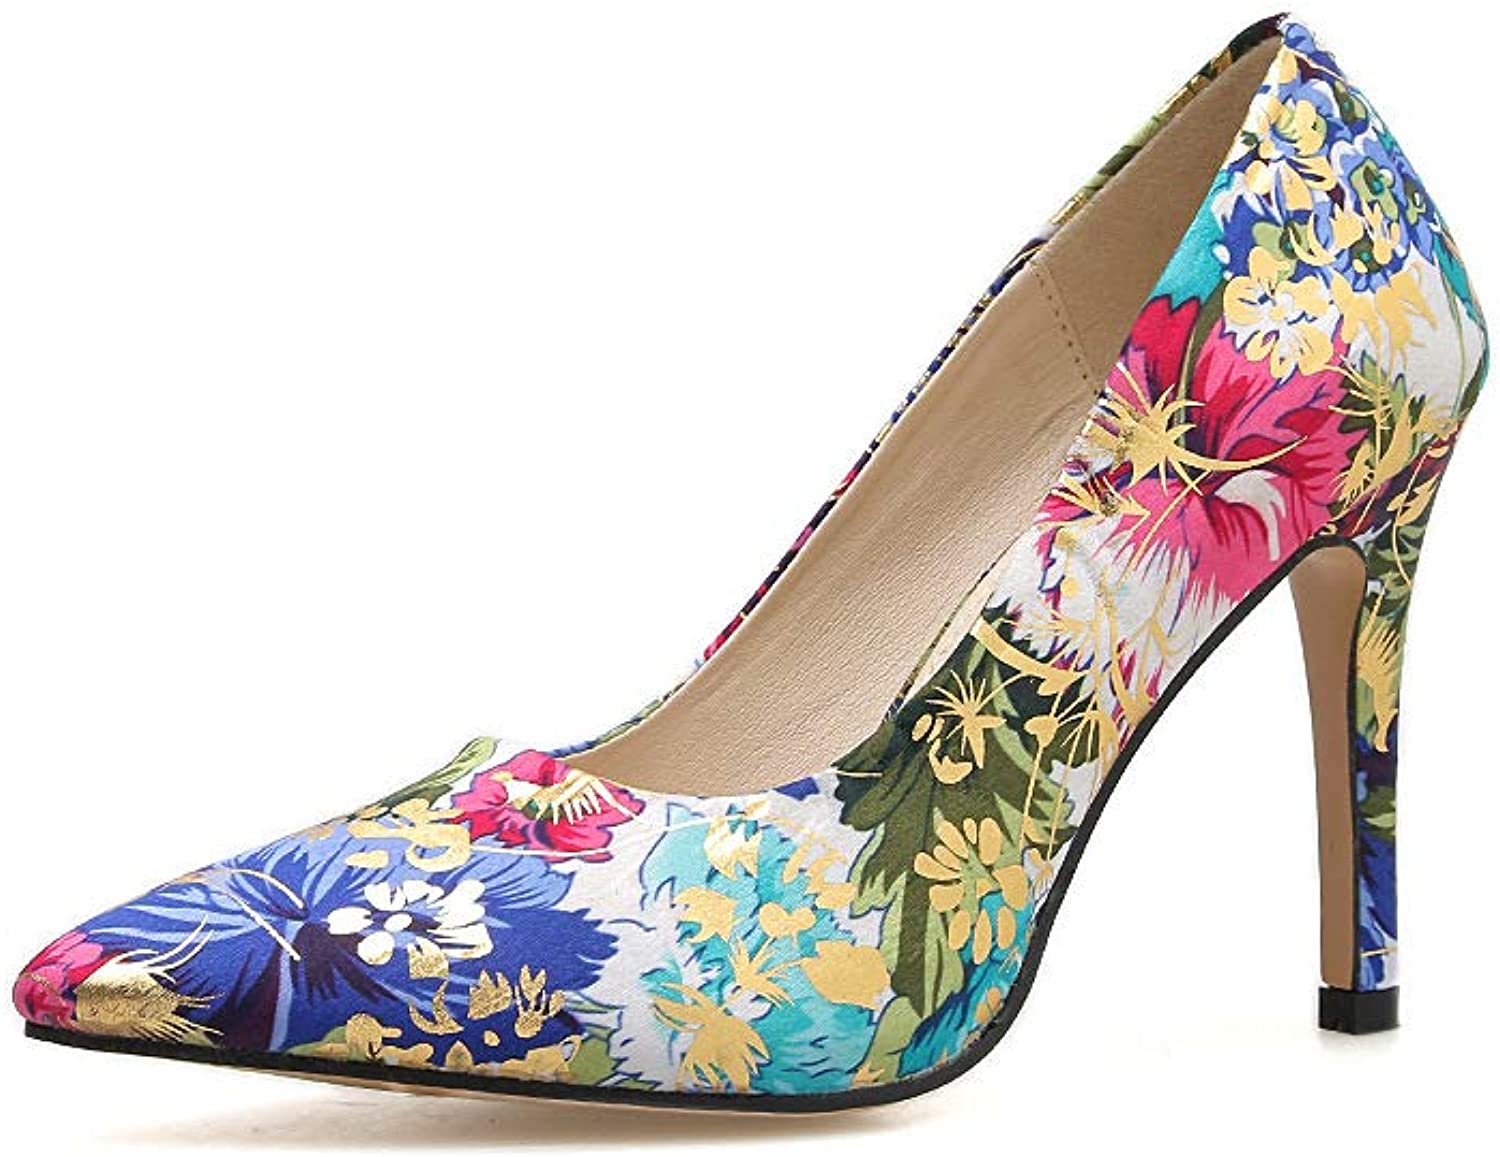 Women Floral Print High Heel 10 cm Pointed Toe Stiletto Dress Wedding Party Pumps shoes